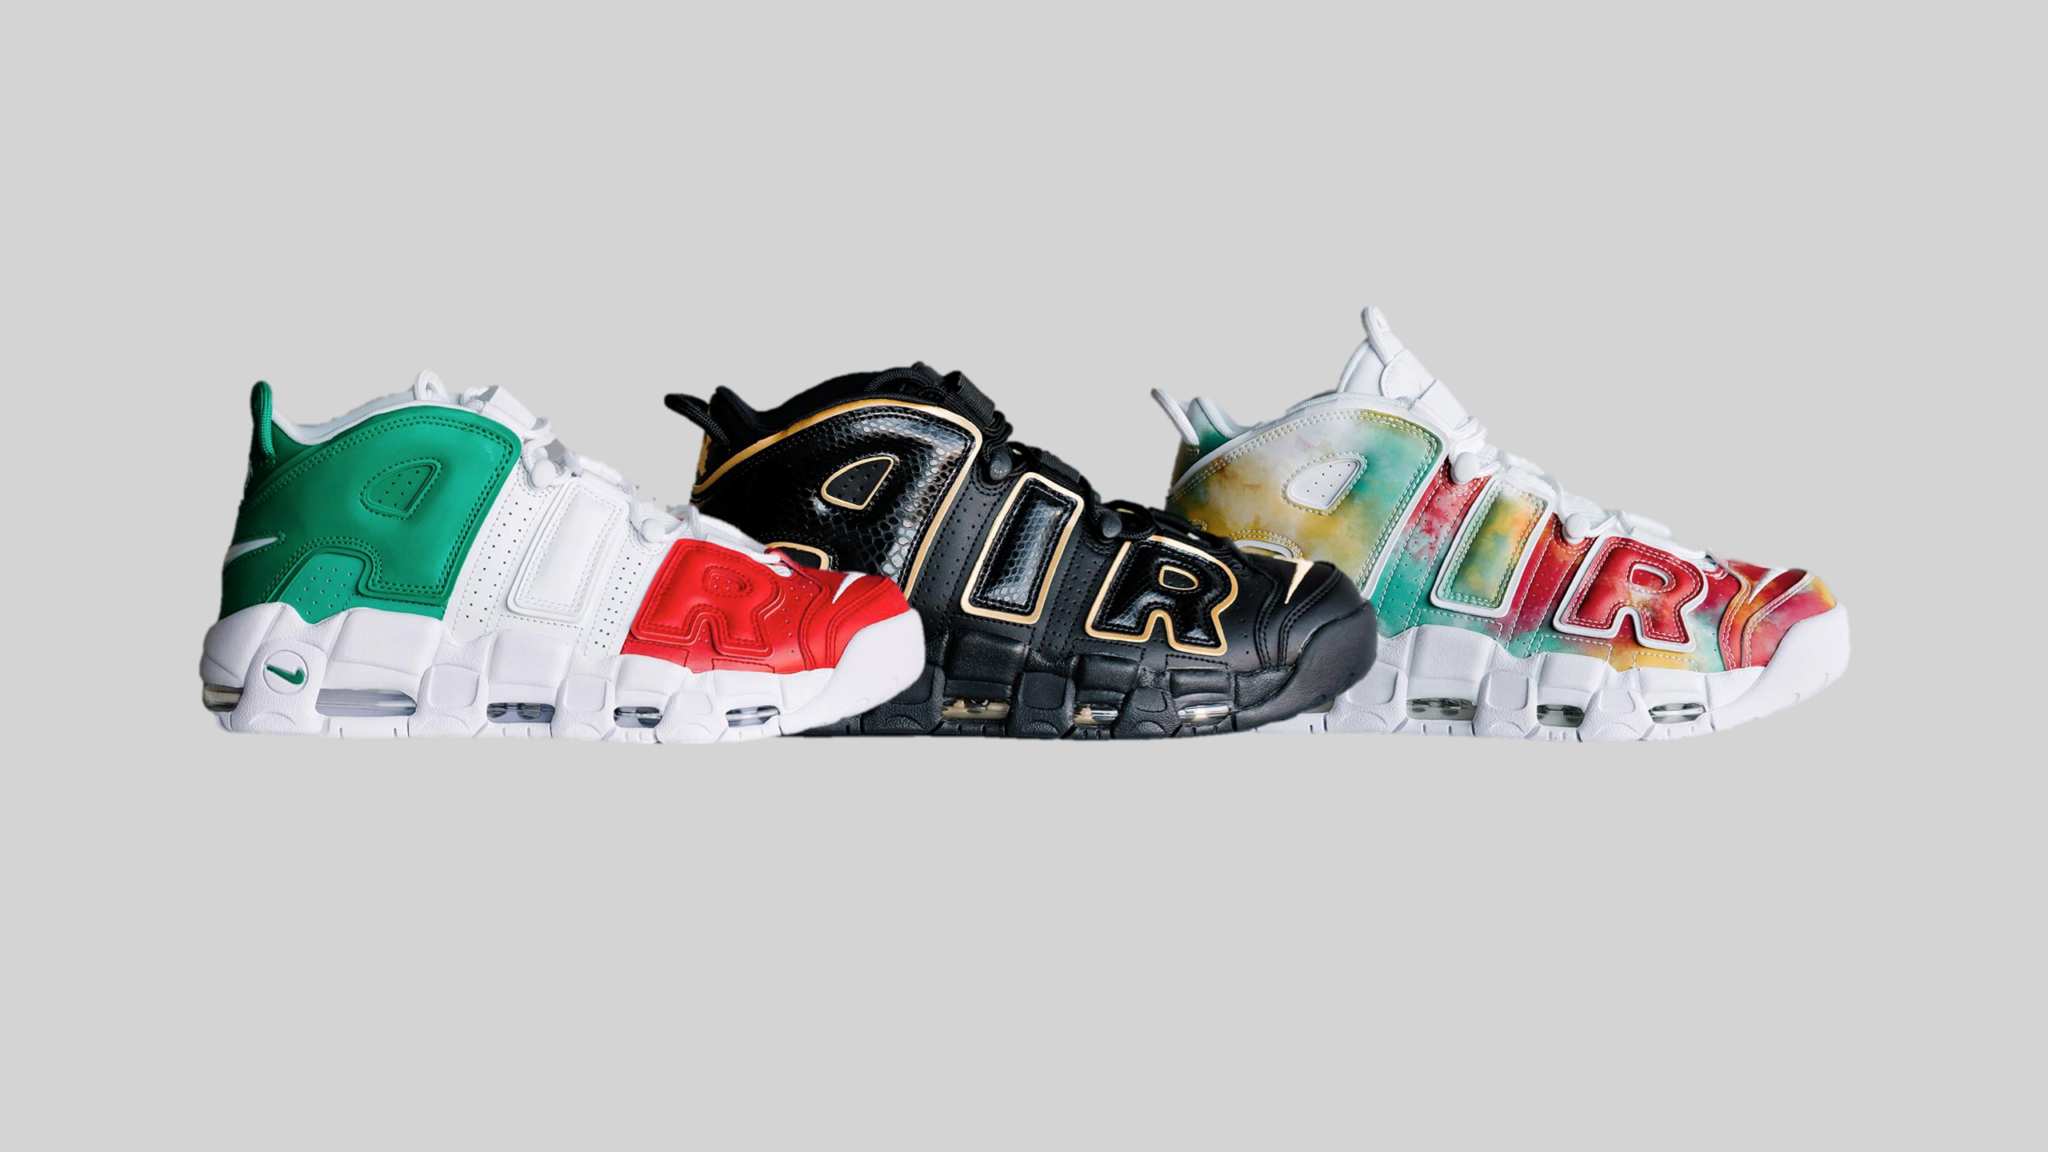 821eb8af0d Get Your Hands On The Nike Air More Uptempo